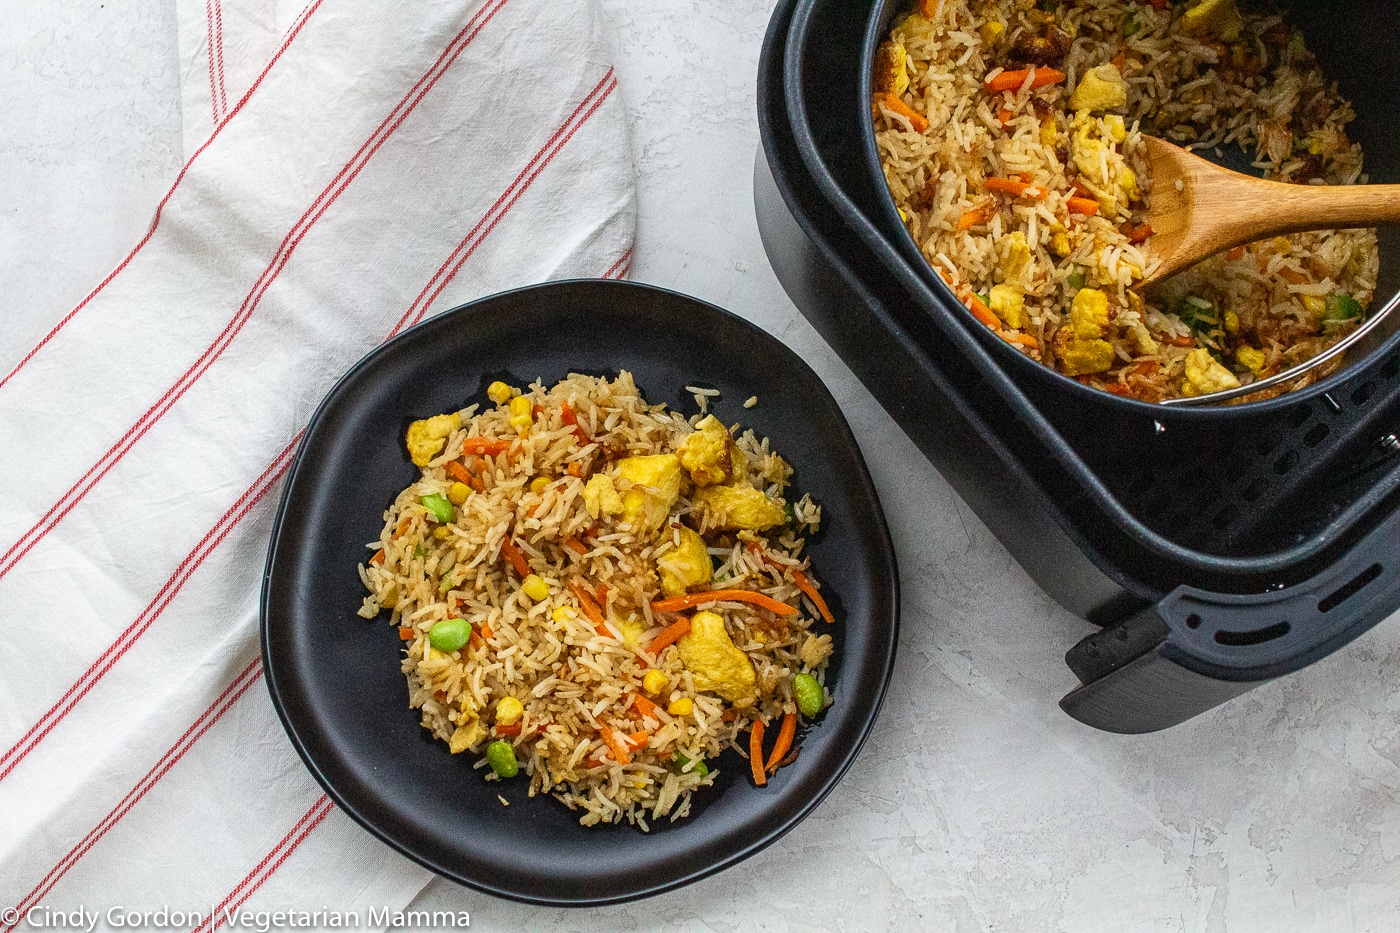 Air Fryer Fried Rice served on a black plate next to more rice in the air fryer basket